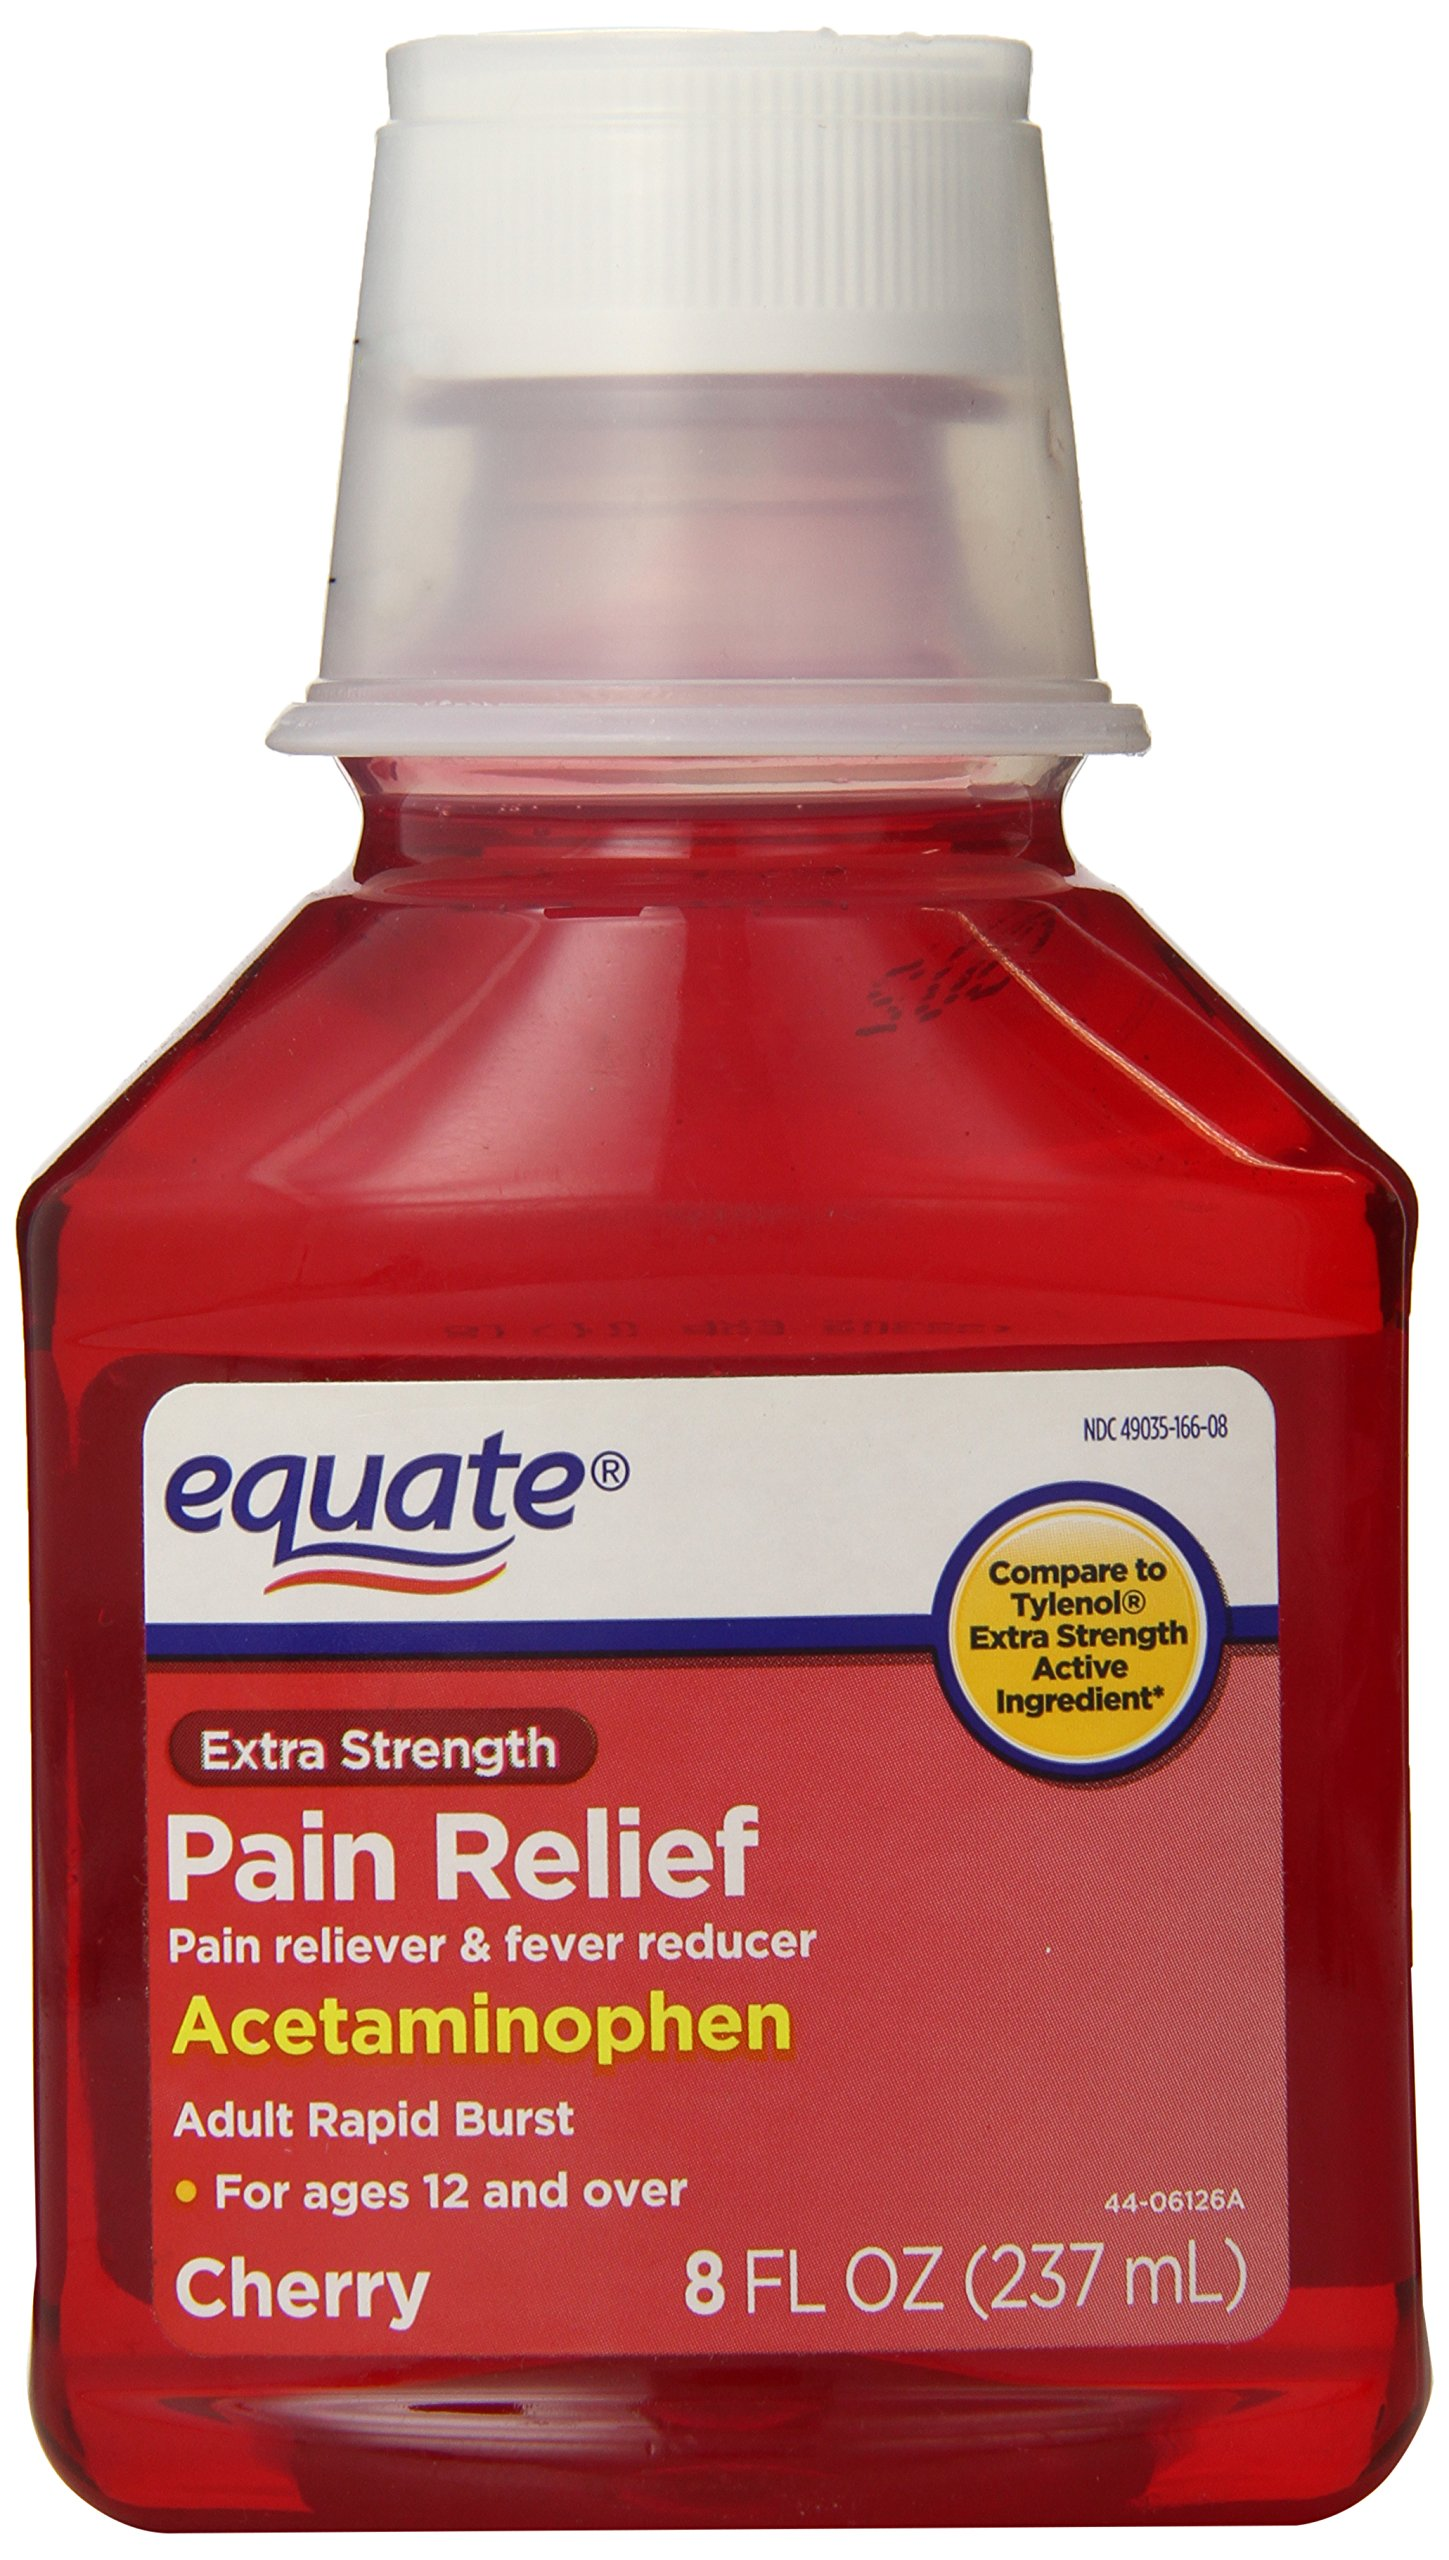 Extra Strength Liquid Acetaminophen Pain Reliever, 8oz, Cherry, By Equate, Compare to Tylenol Extra Strength